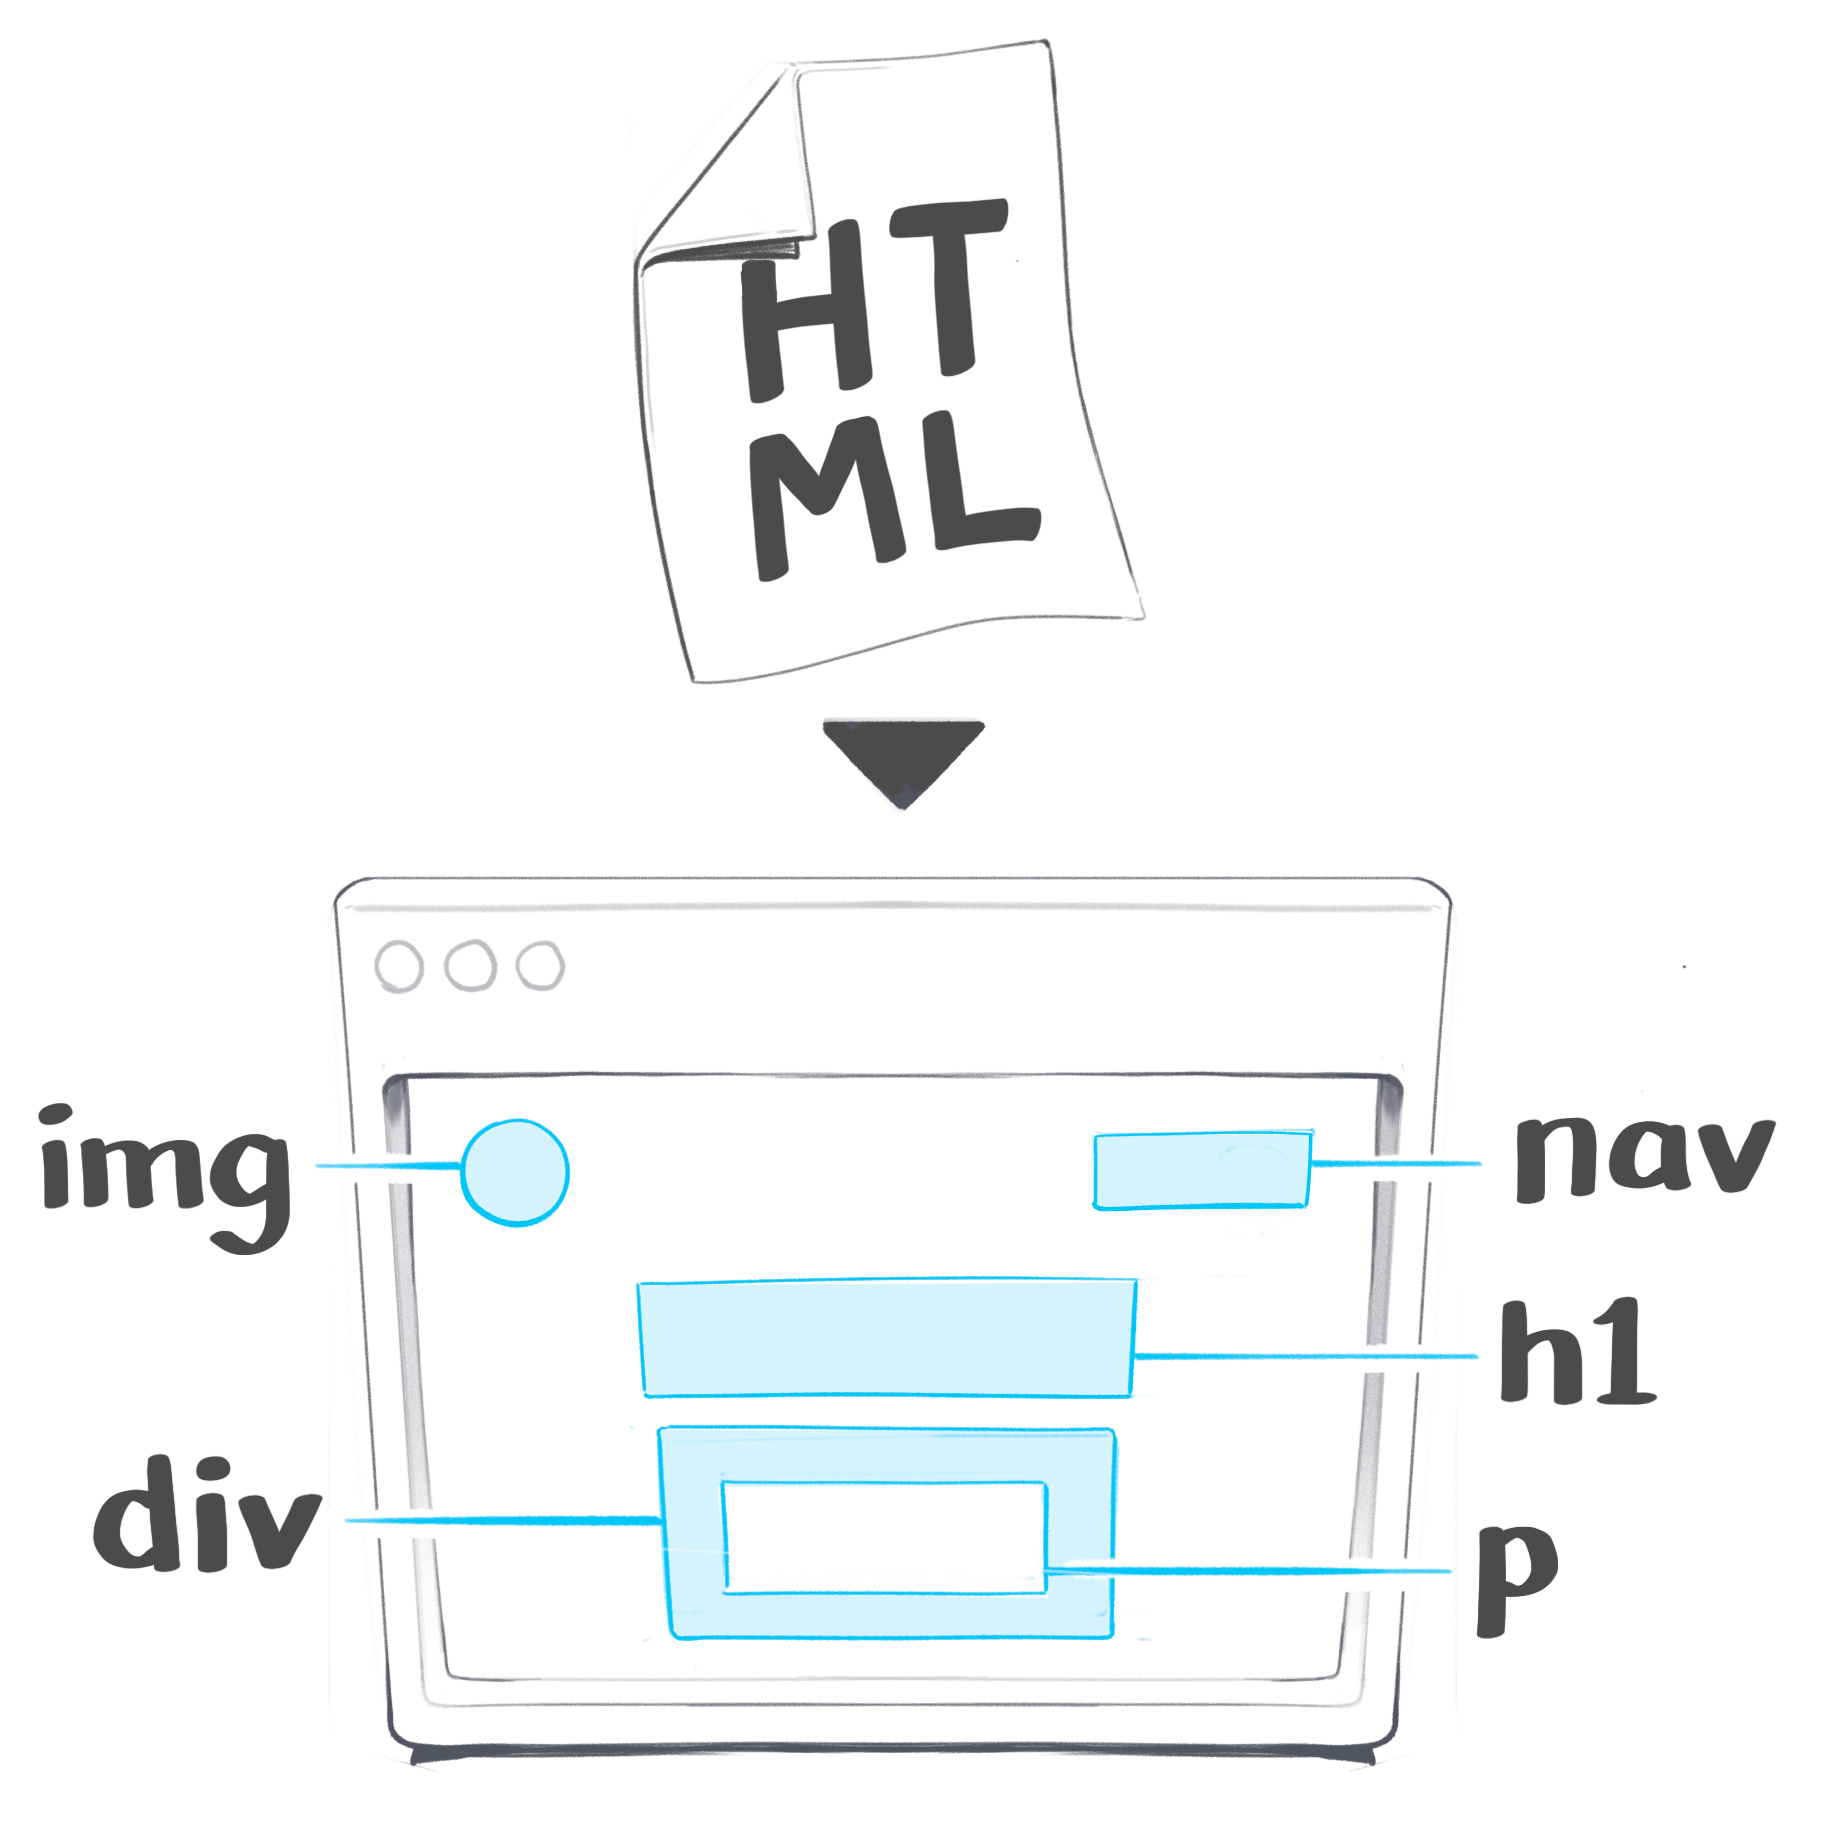 An HTML document going into a browser and rendering as node elements on the DOM